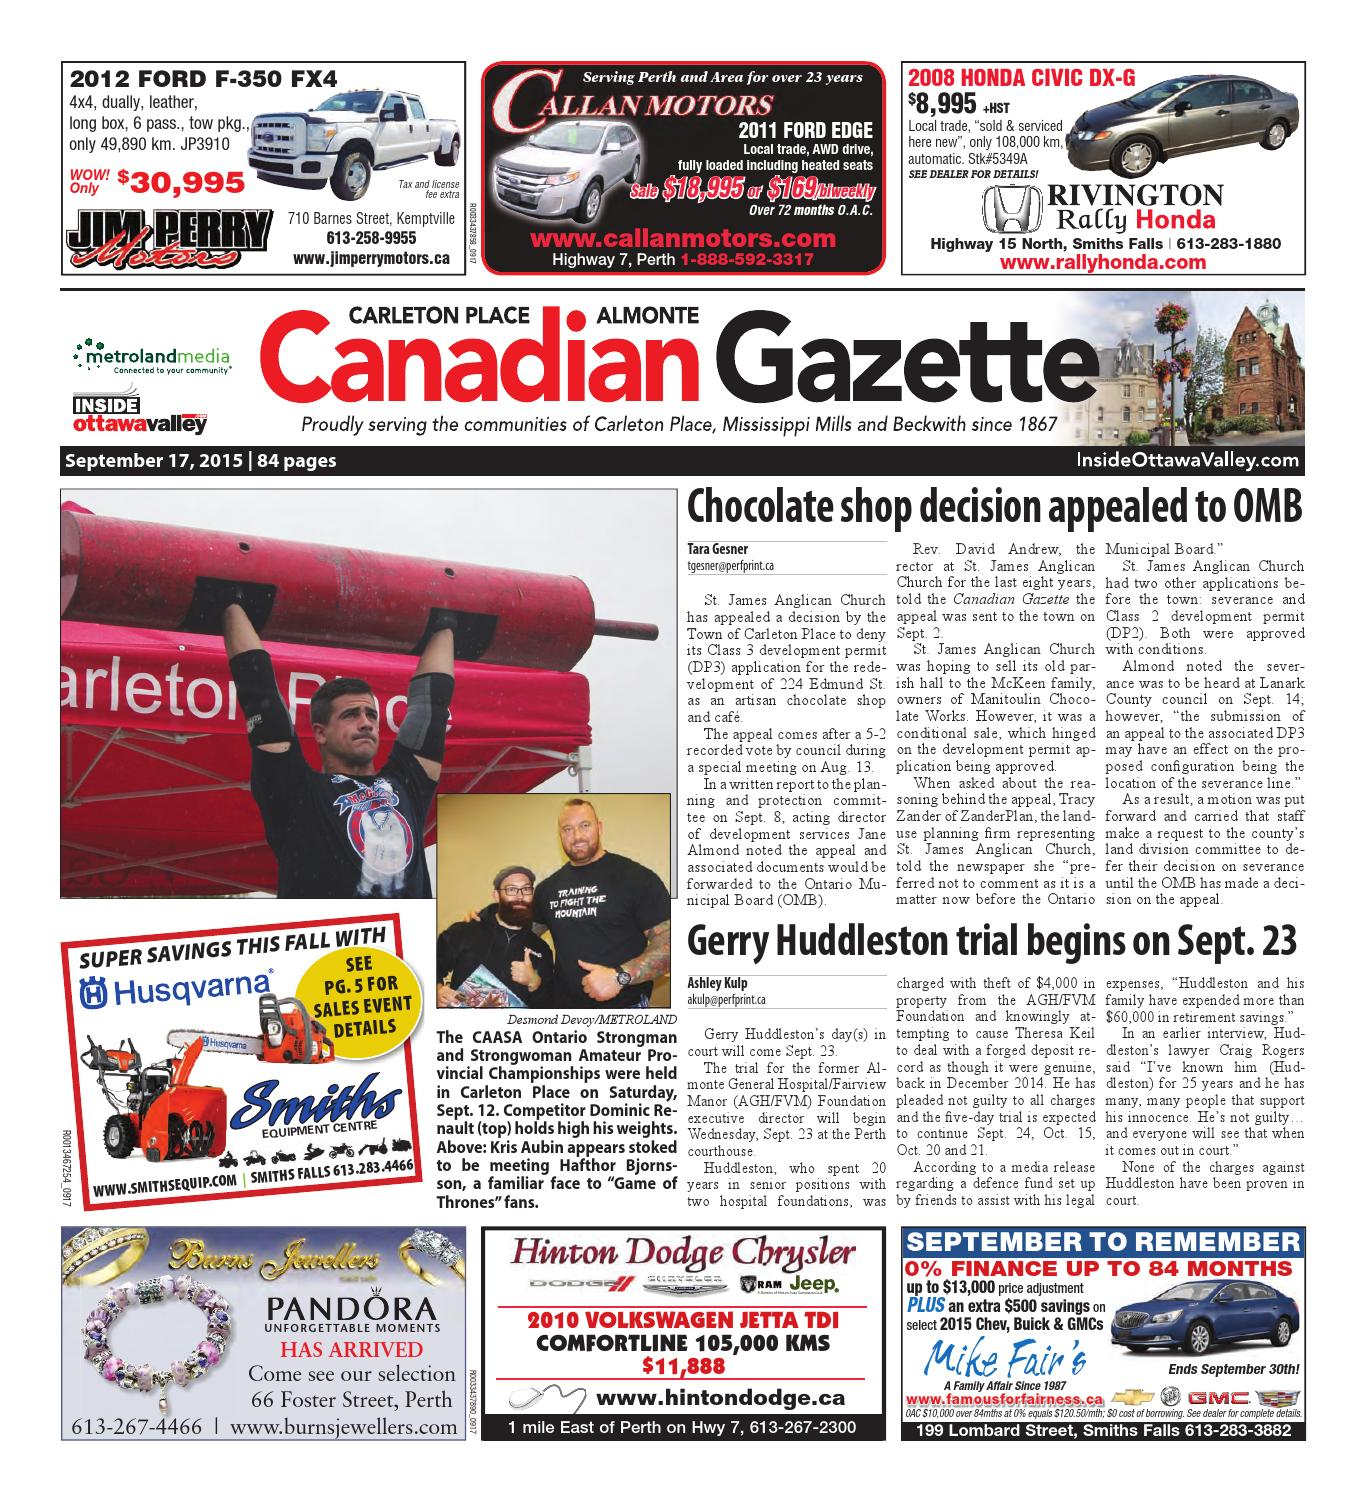 Almontecarletonplace091715 by Metroland East - Almonte Carleton Place  Canadian Gazette - issuu